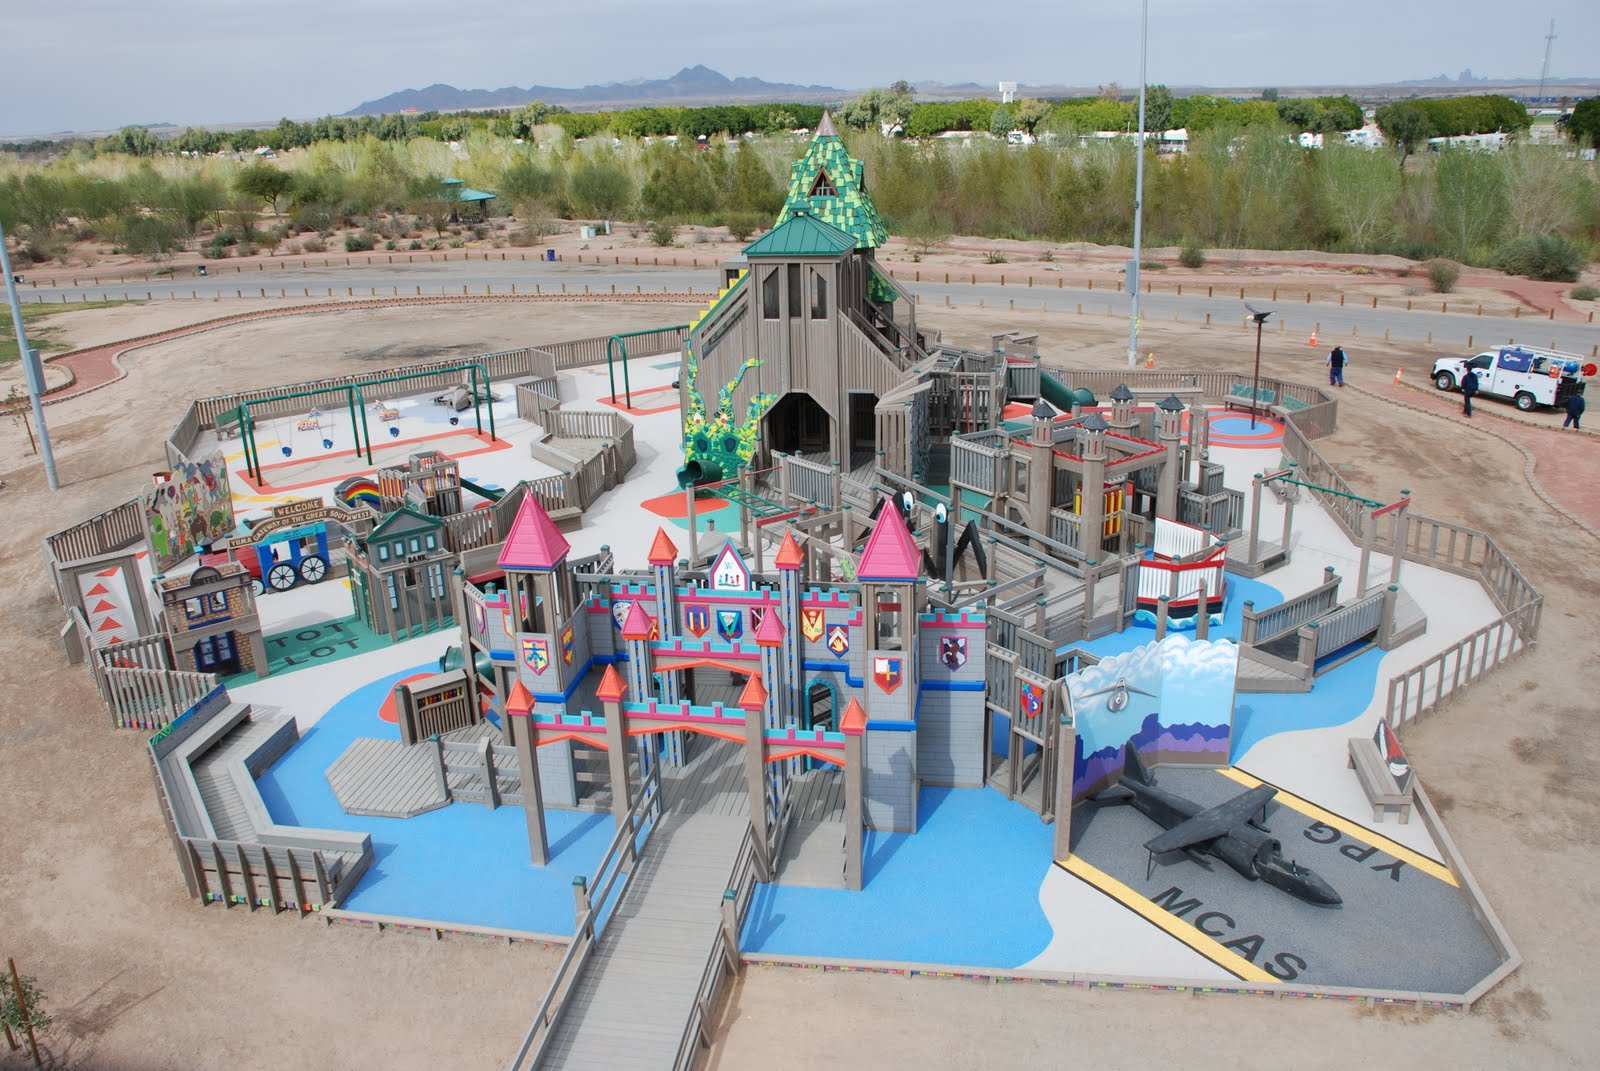 Mighty Lists 10 Amazing Playgrounds